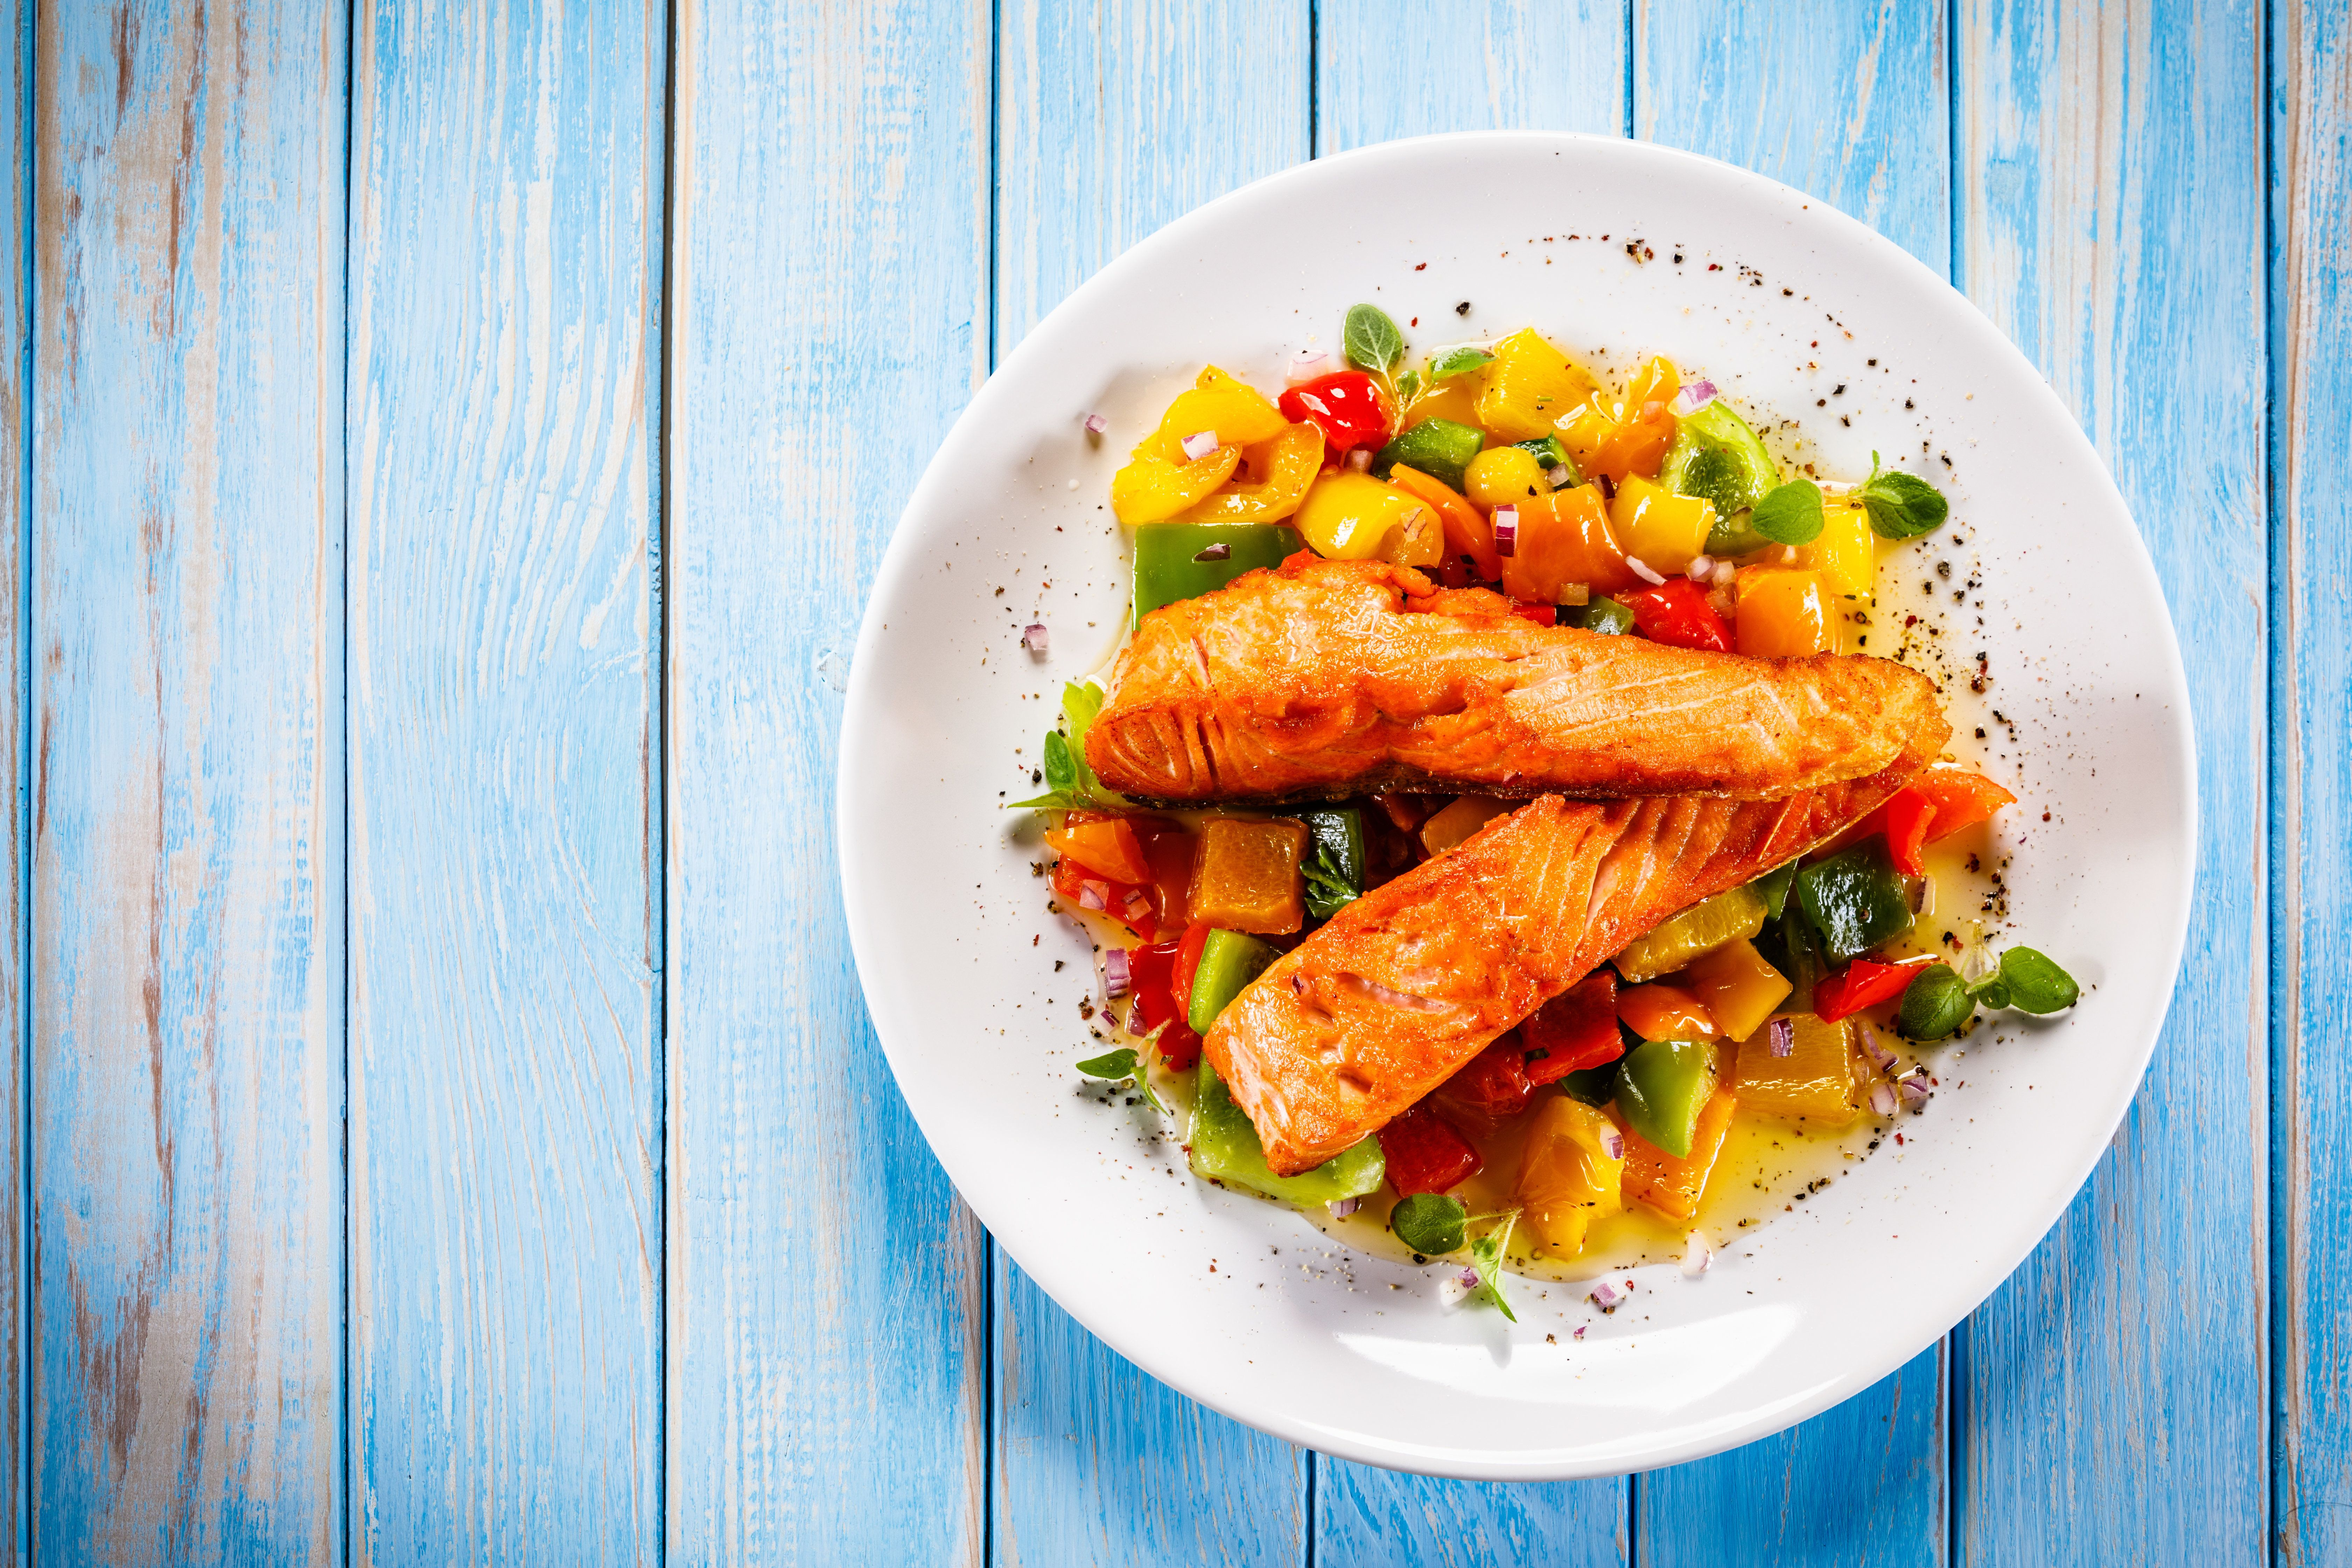 Does Your Child Have Asthma? This Is Why You Should Give Them Fatty Fish For